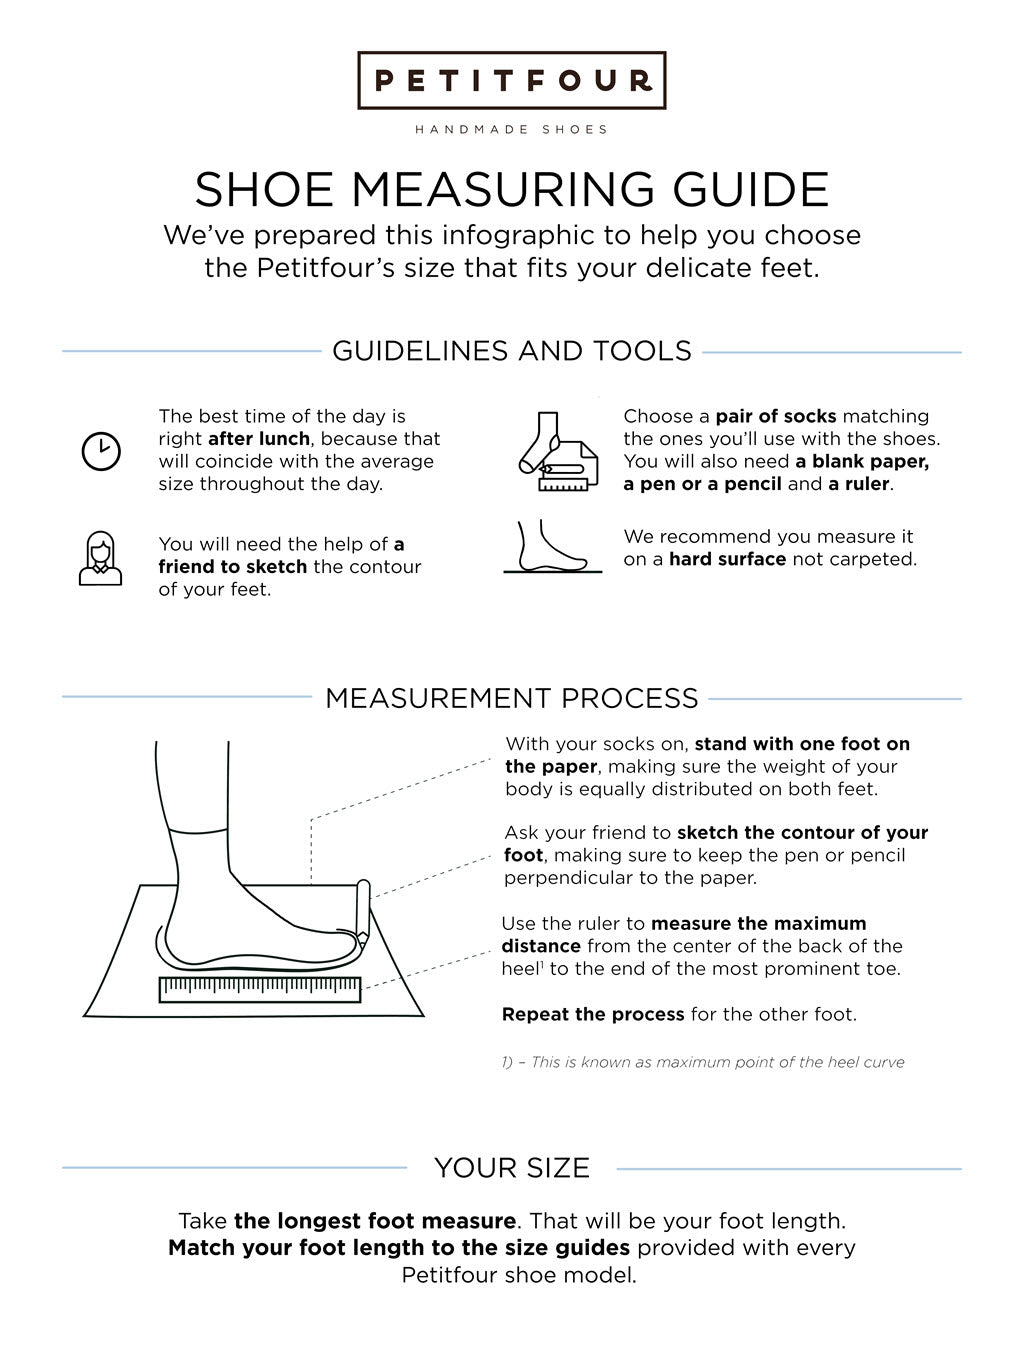 small-size shoes measuring guide infographics